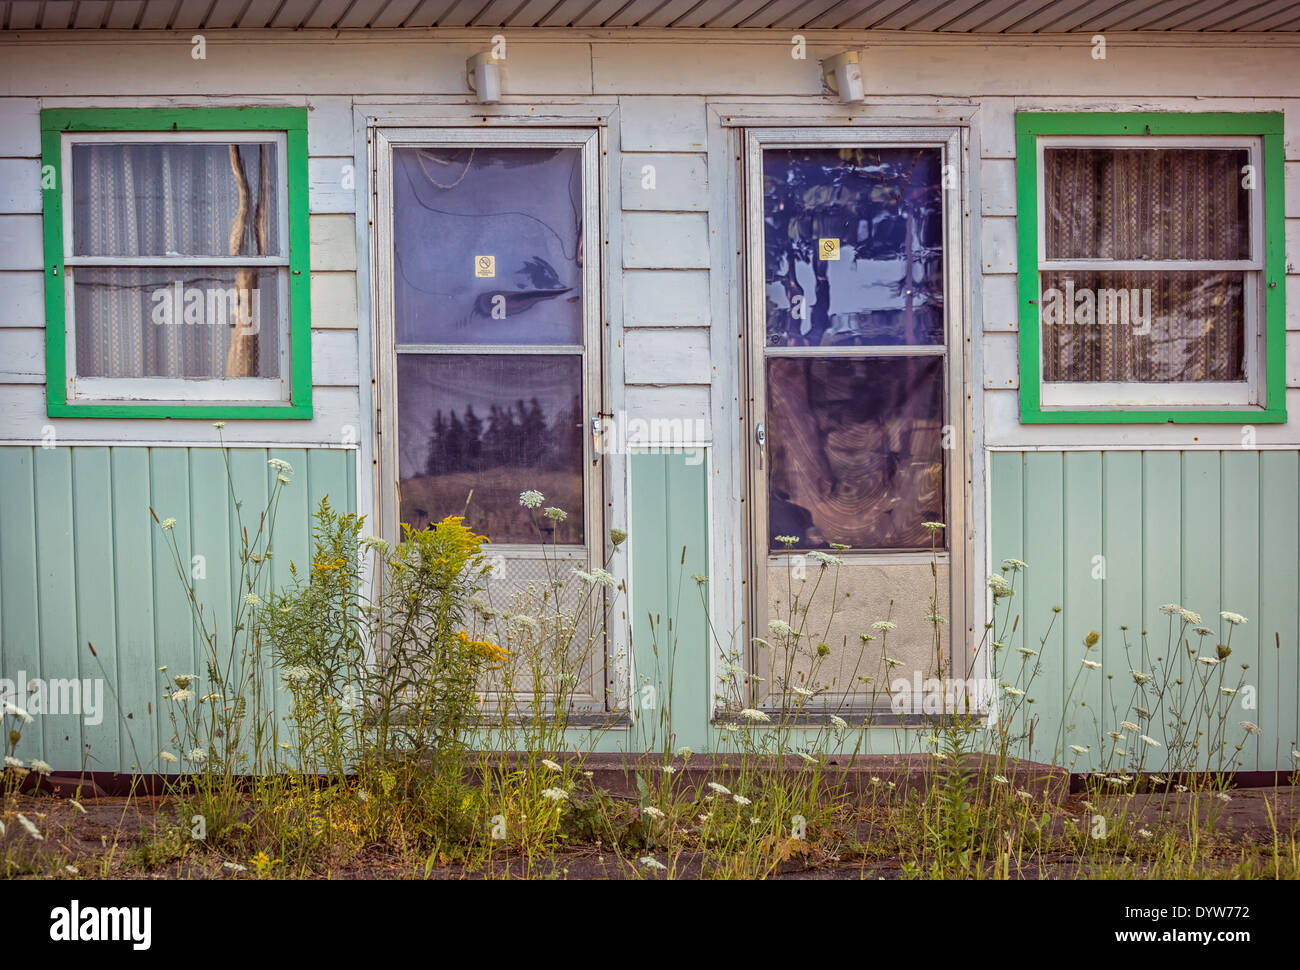 Retro abandoned motel growing up in weeds. - Stock Image